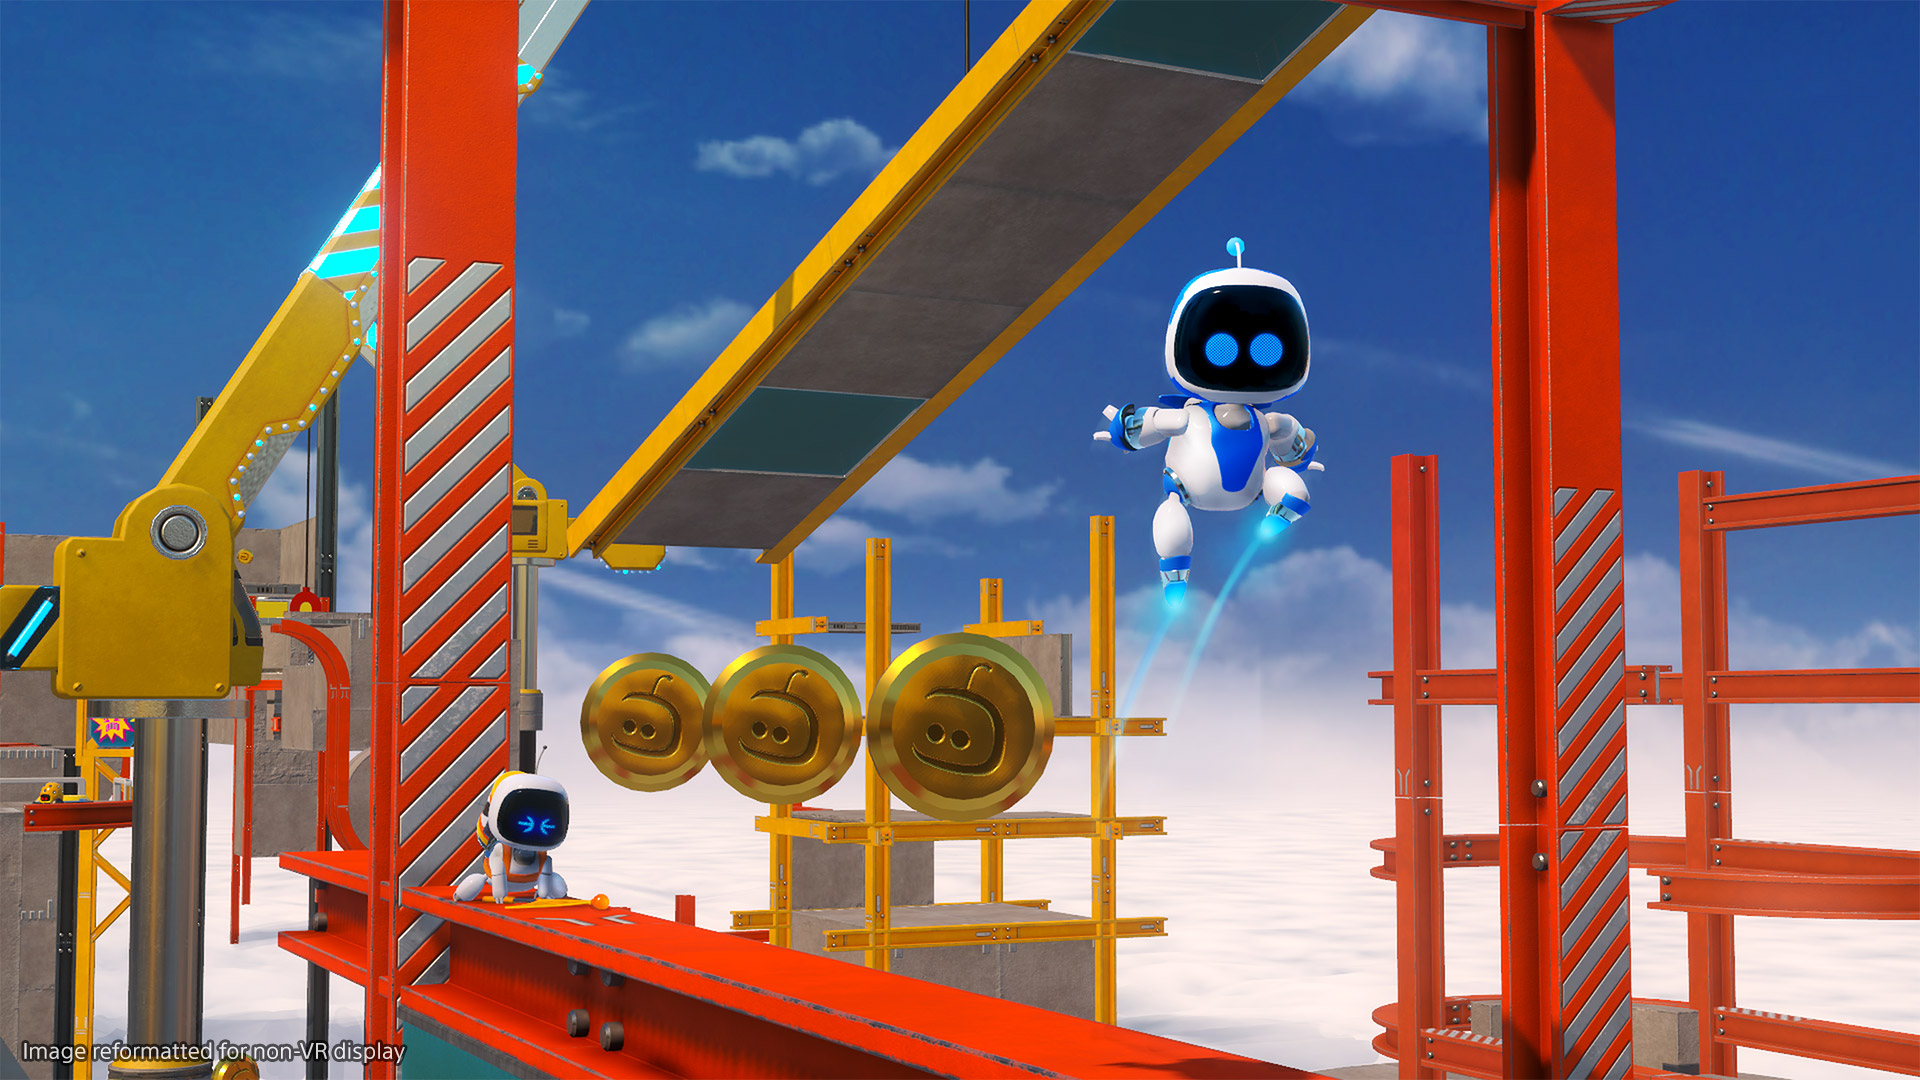 ASTRO BOT Review – This VR Platformer Earns Our First 10 Out